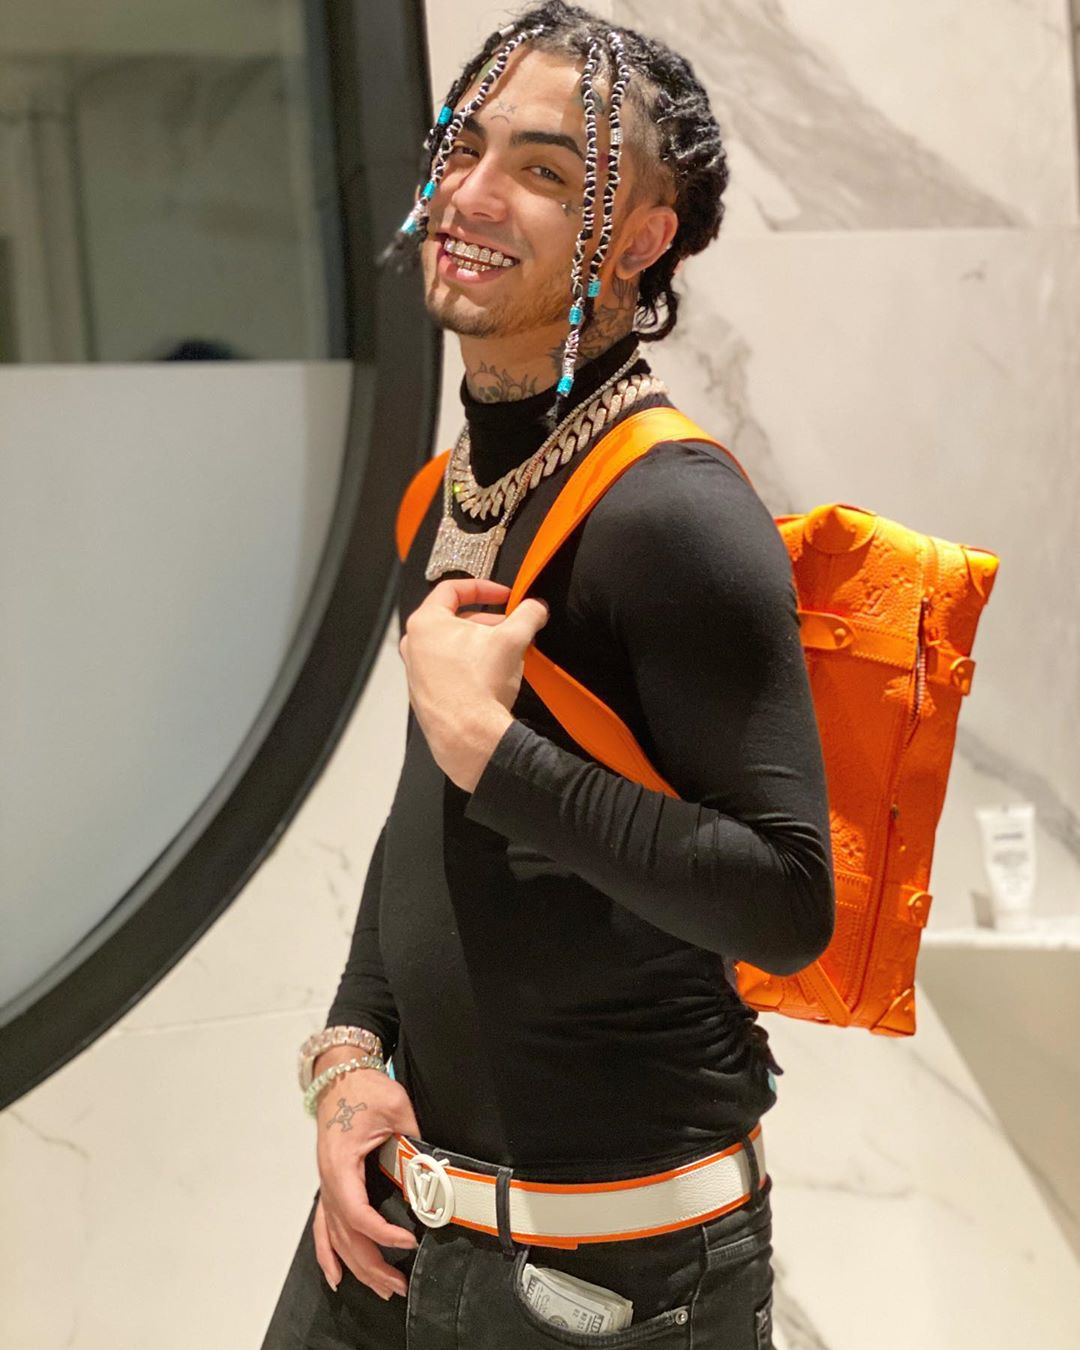 Lil Pump Smiles For The Camer In Louis Vuitton Backpack And Belt